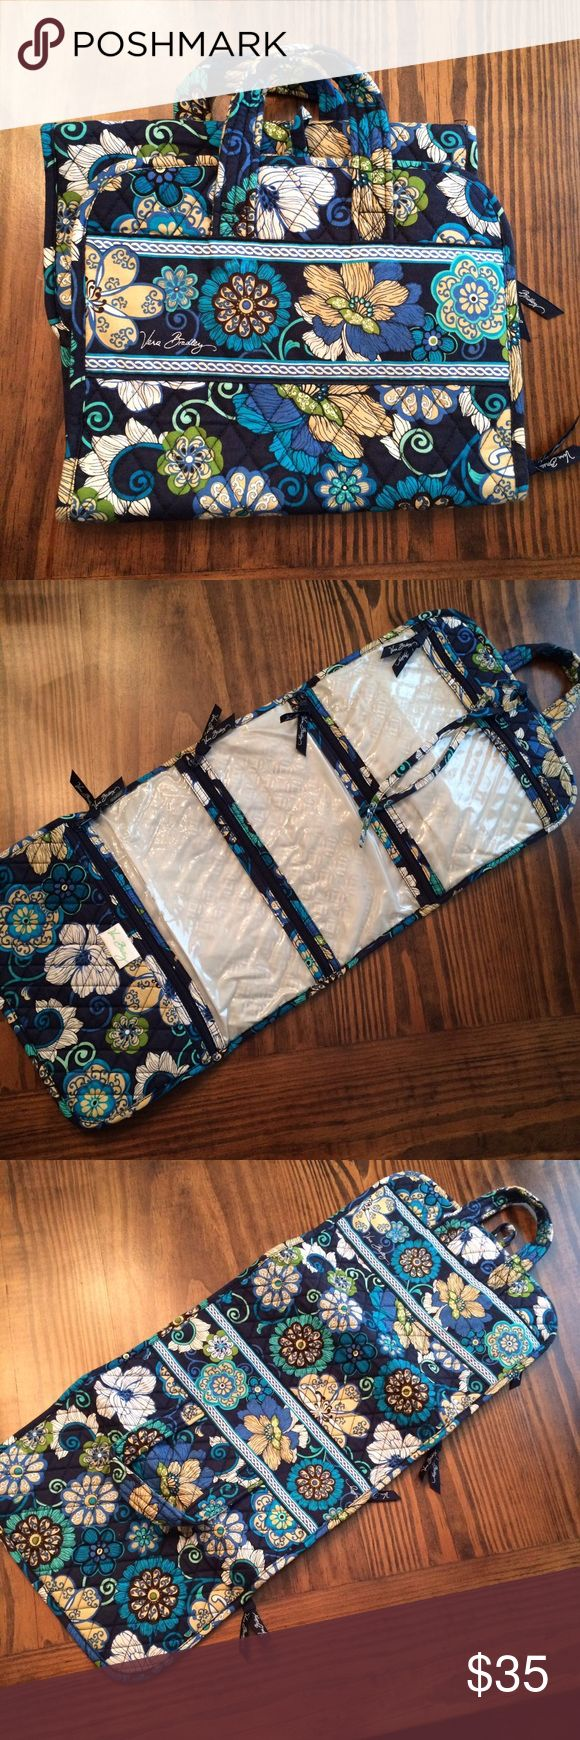 Vera Bradley Travel Hanging Organizer Perfect condition Vera Bradley Hanging Organizer! Great travel bag for your toiletries or even everyday jewelry storage and organization! Vera Bradley Bags Travel Bags